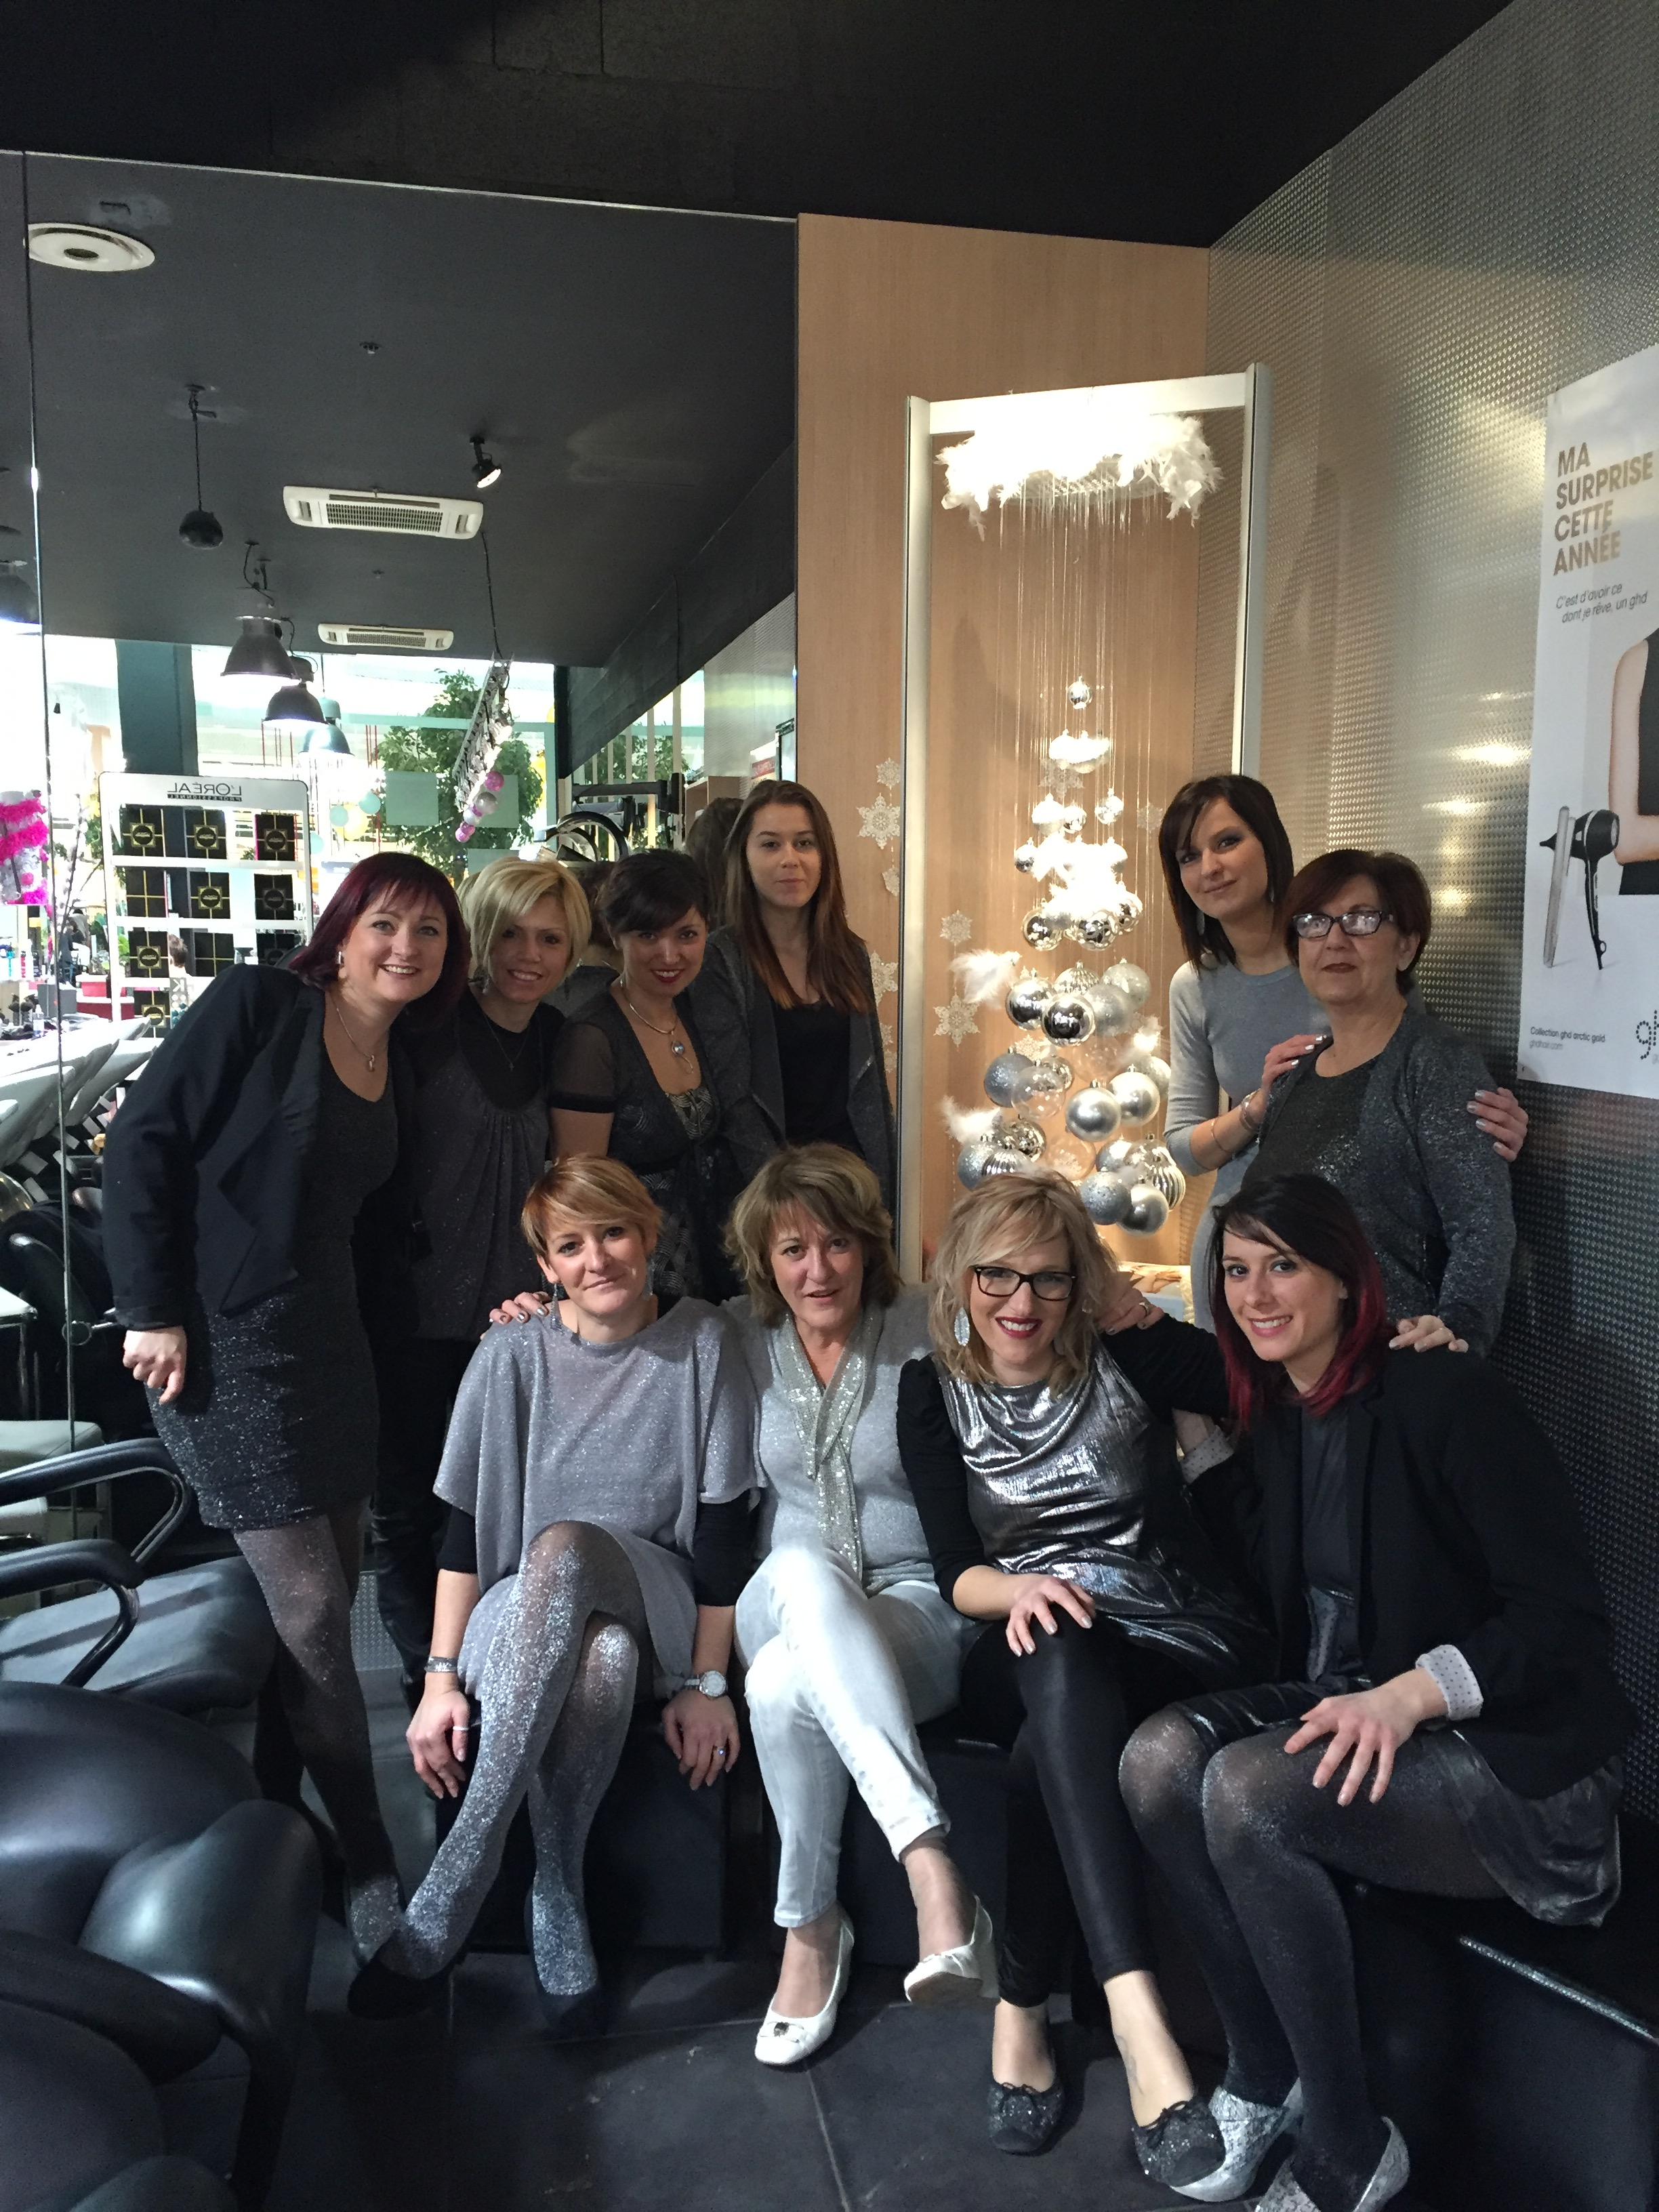 Salon O Coiffure Reims Champfleury Noel 2015 Coiffeur Visagiste Reims Salon